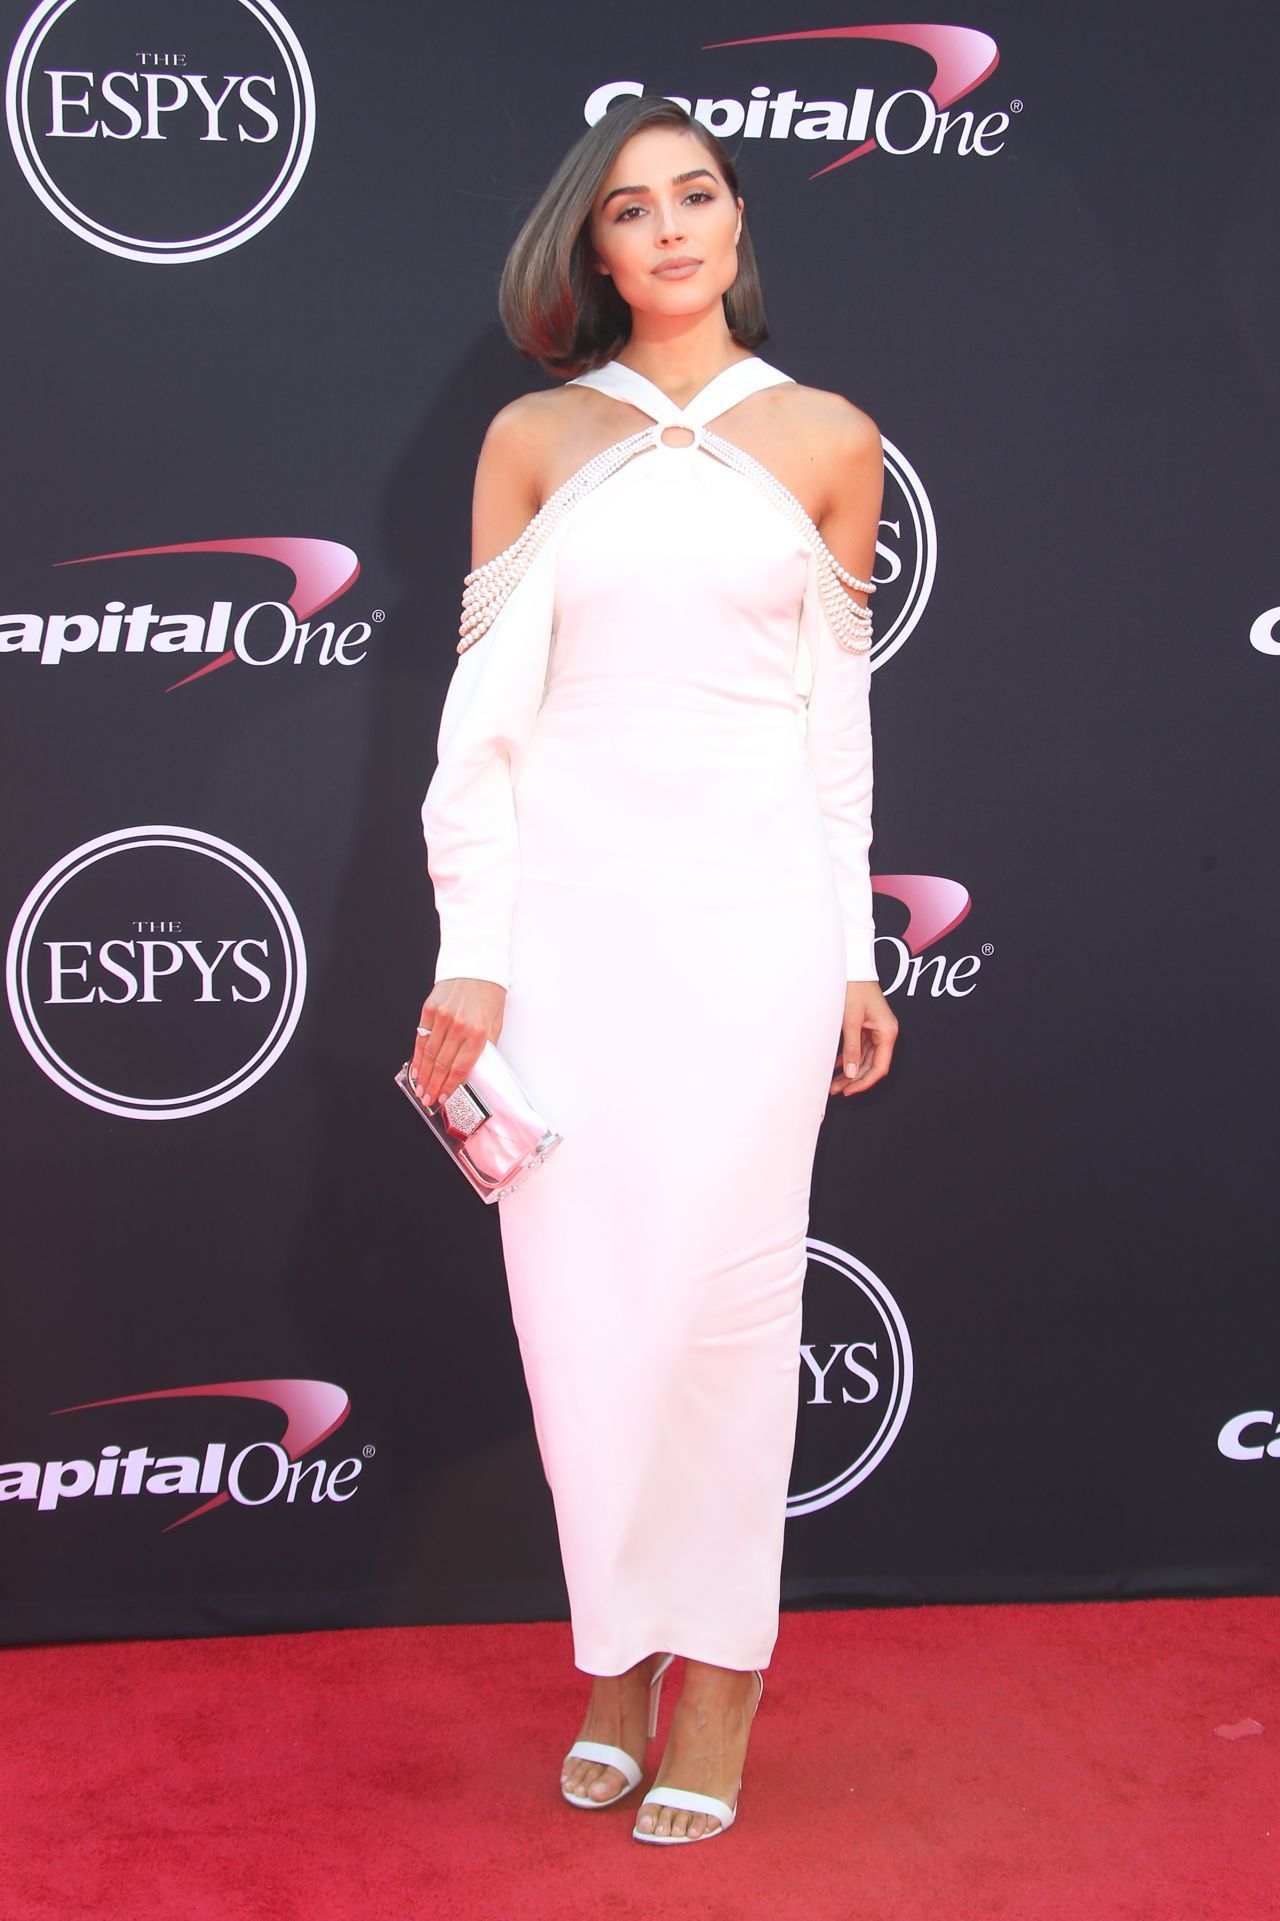 #Awards, #LosAngeles, #OliviaCulpo Olivia Culpo – ESPY Awards in Los Angeles 07/12/2017 | Celebrity Uncensored! Read more: http://celxxx.com/2017/07/olivia-culpo-espy-awards-in-los-angeles-07122017/